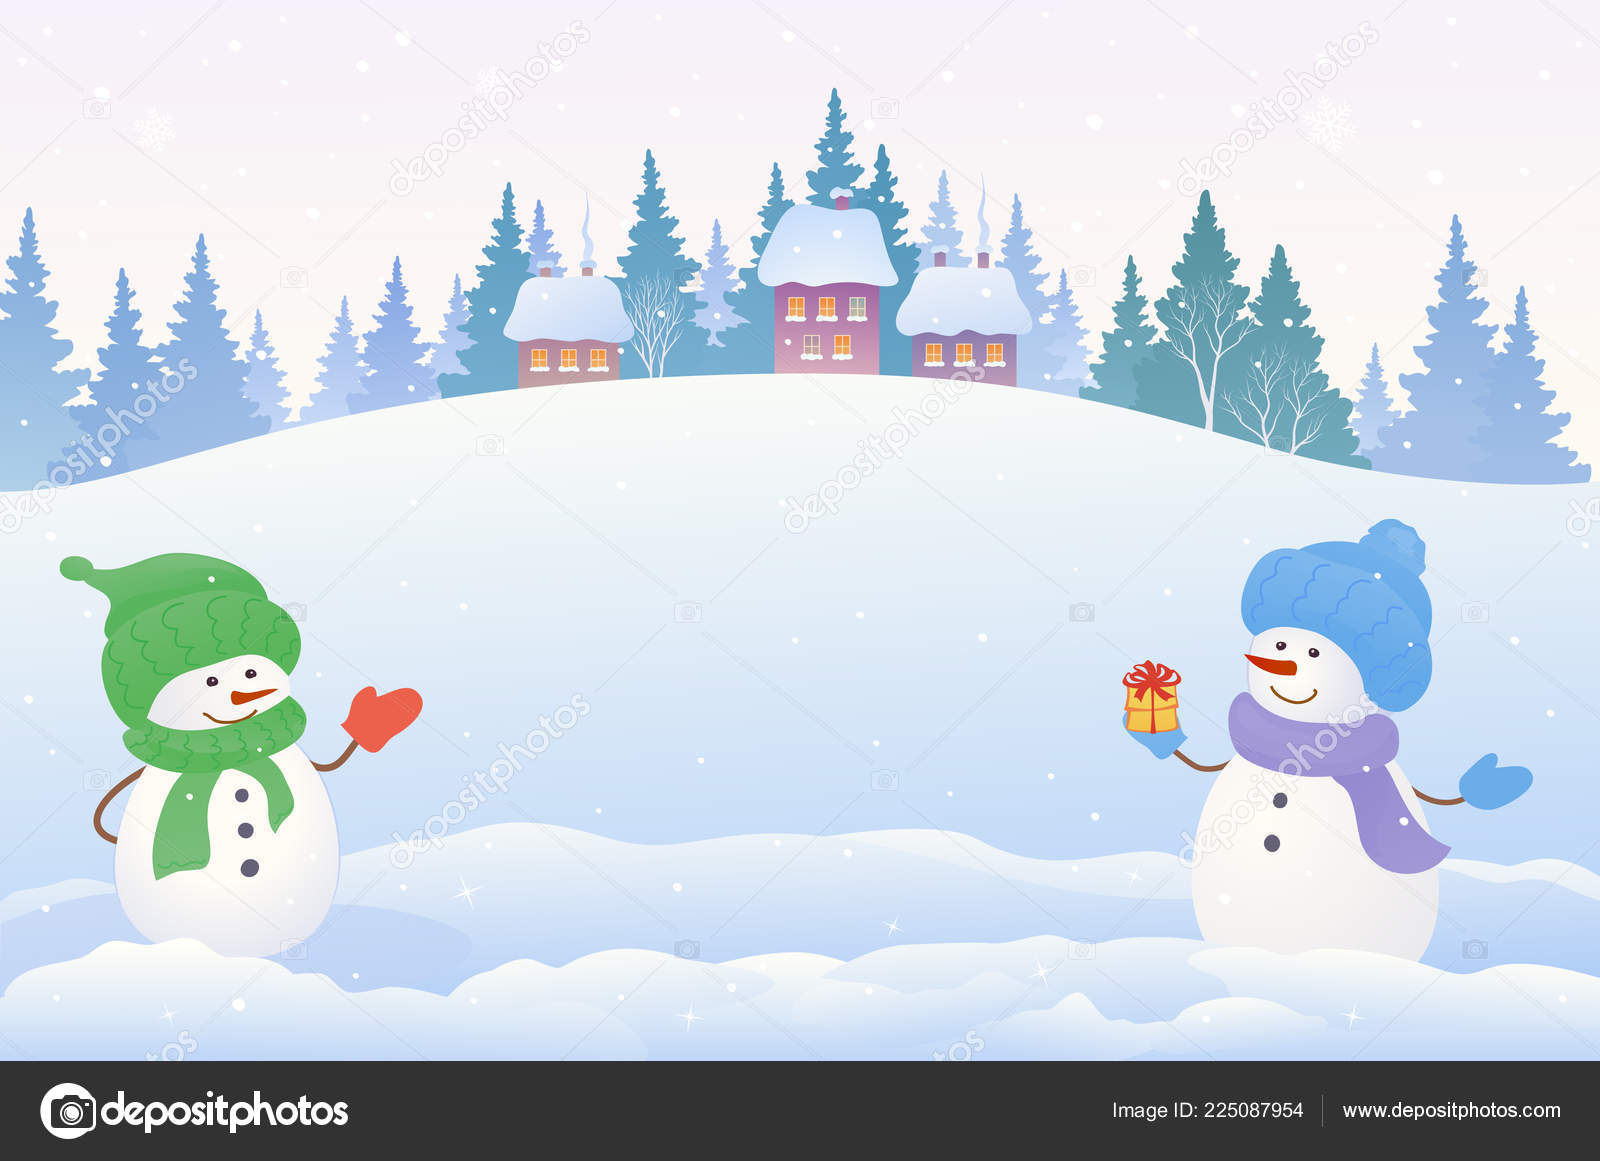 Clipart: snow scenery.